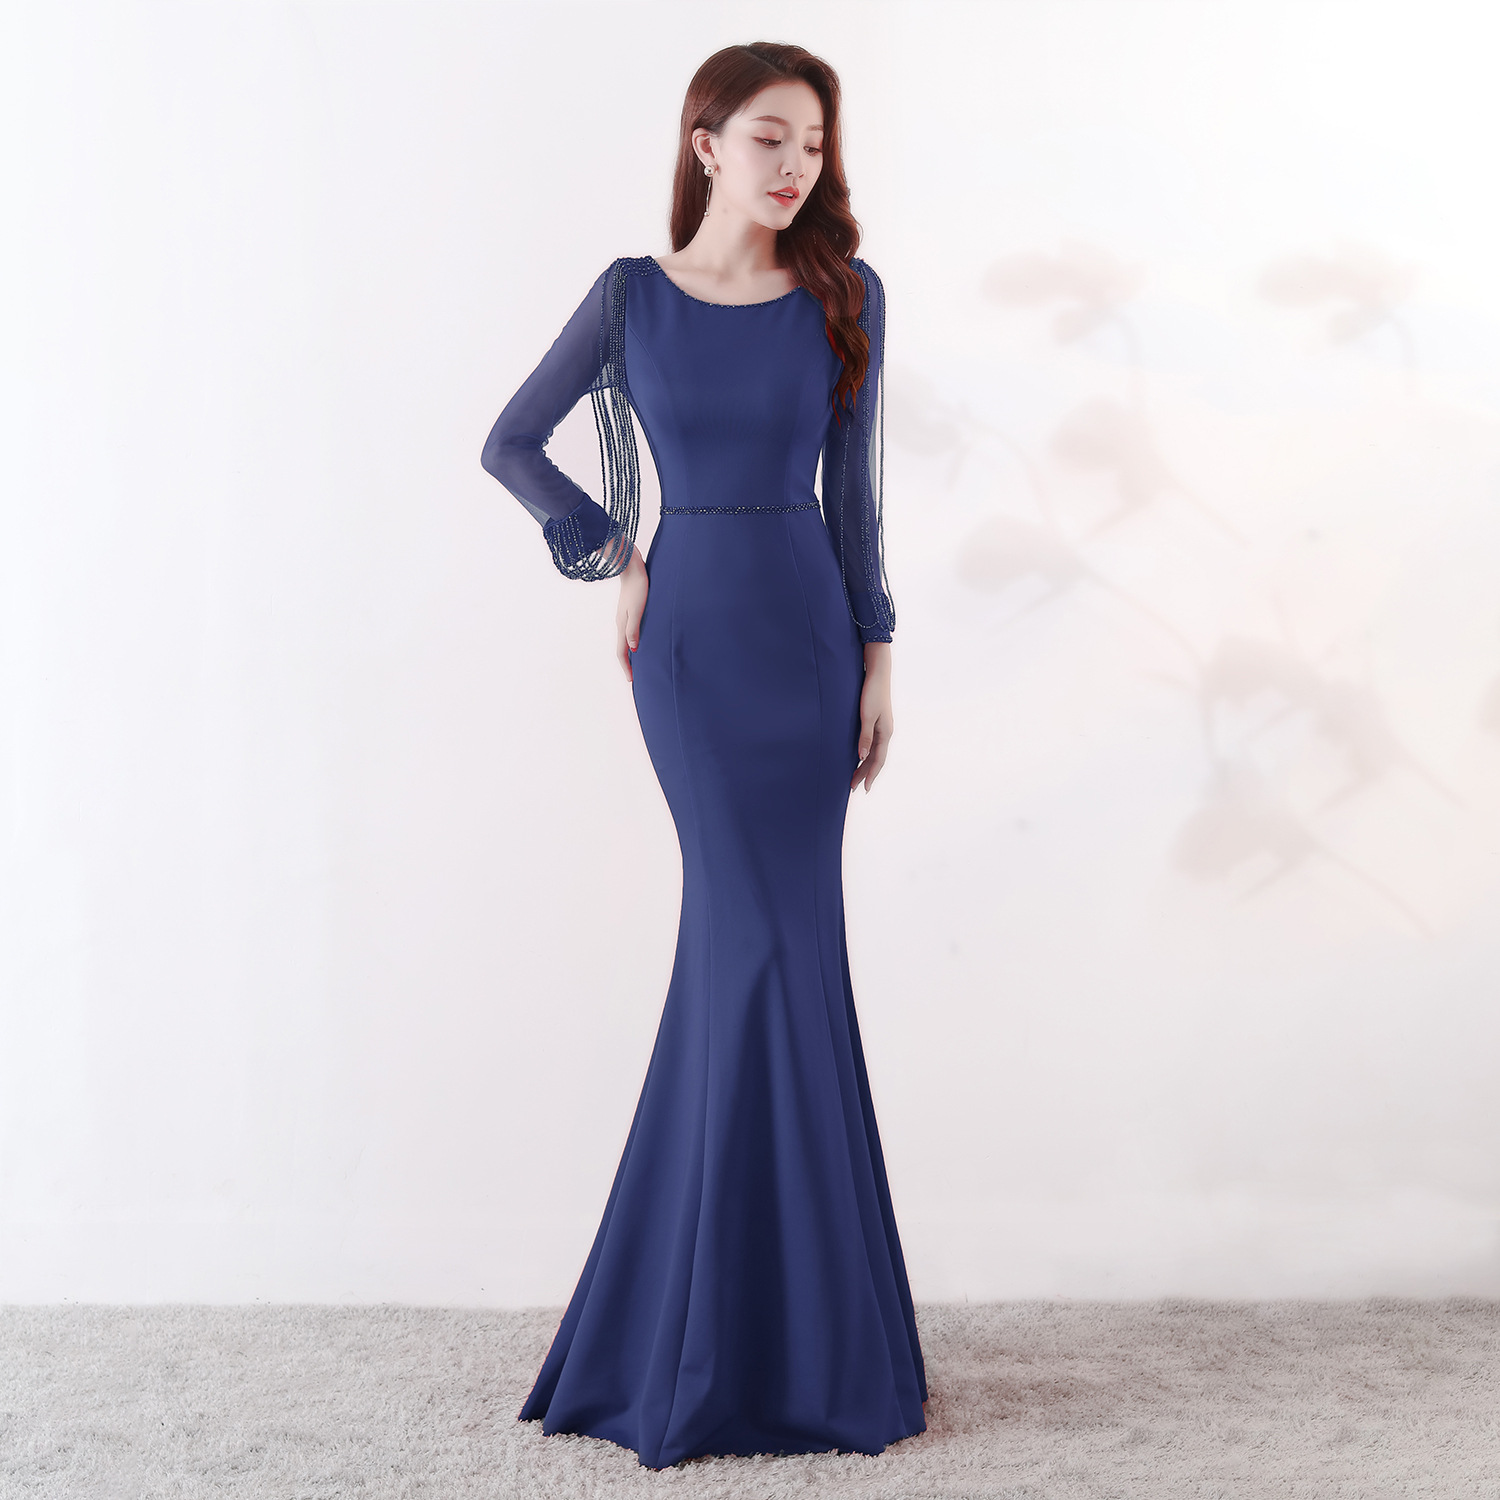 Evening Dresses 2019 Long Sleeve Scoop Sparkle Elegant Little Mermaid Autumn Winter Long Formal Party Prom Gowns Gwisg Nos